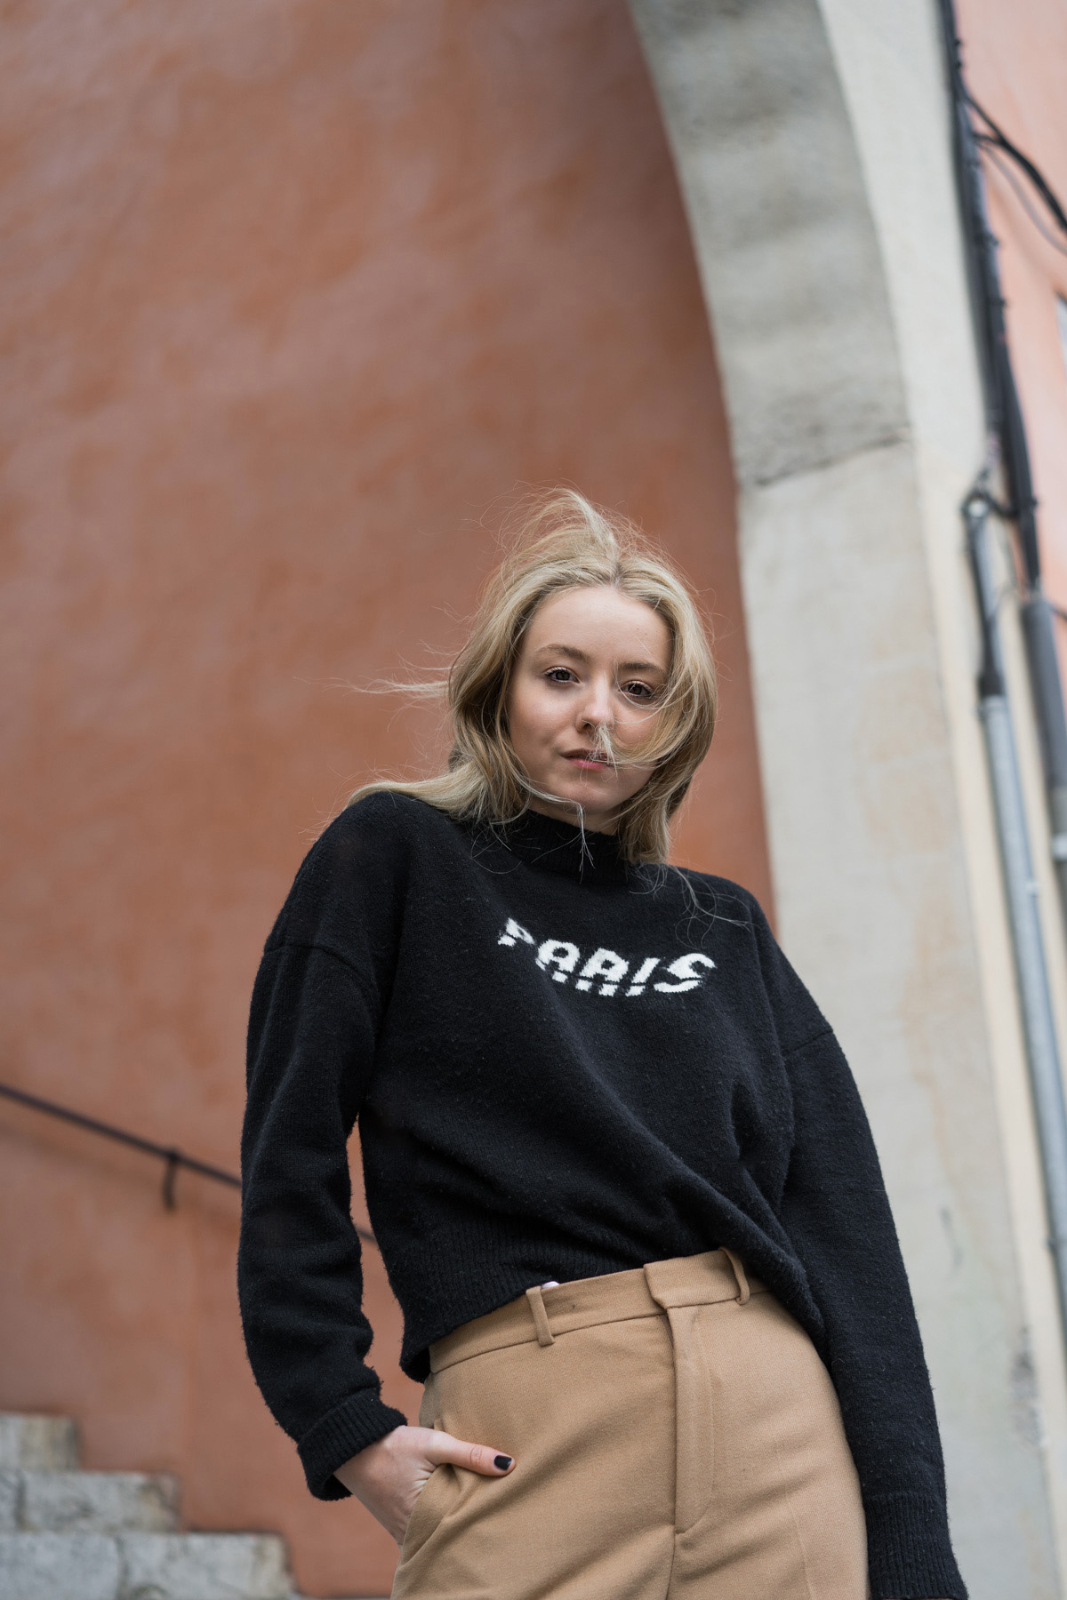 Paris_Sweater_Mules_blog_instagram_Blogger_Fashion_deutschland_beauty_style_bloggerin_travel_berlin_thelimitsofcontrol